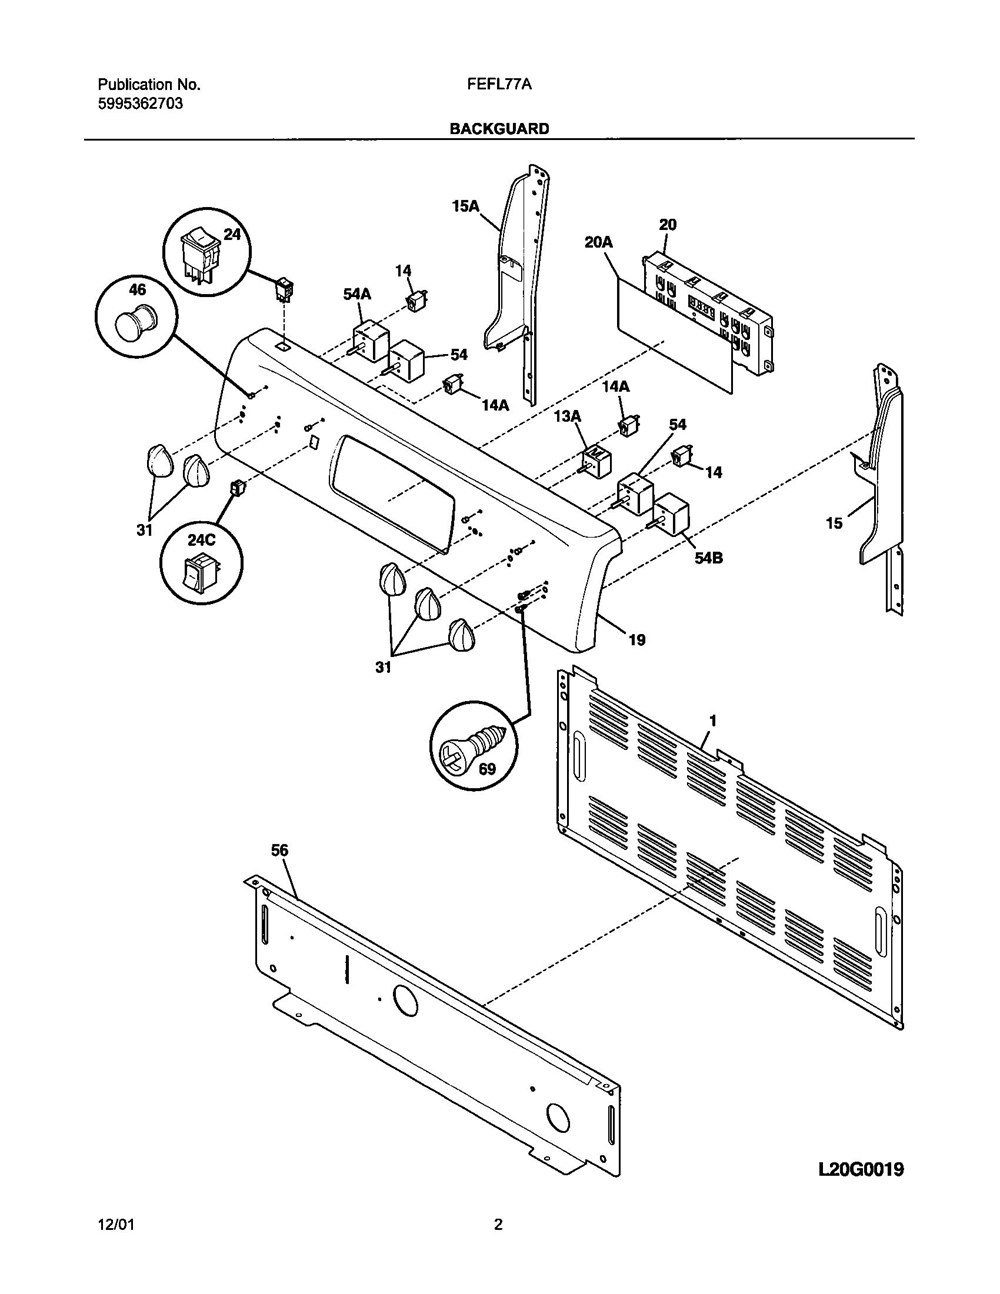 Fefl77asc Frigidaire Company Appliance Parts 07top Drawer 09door 01cover 10wiring Diagram 11wiring